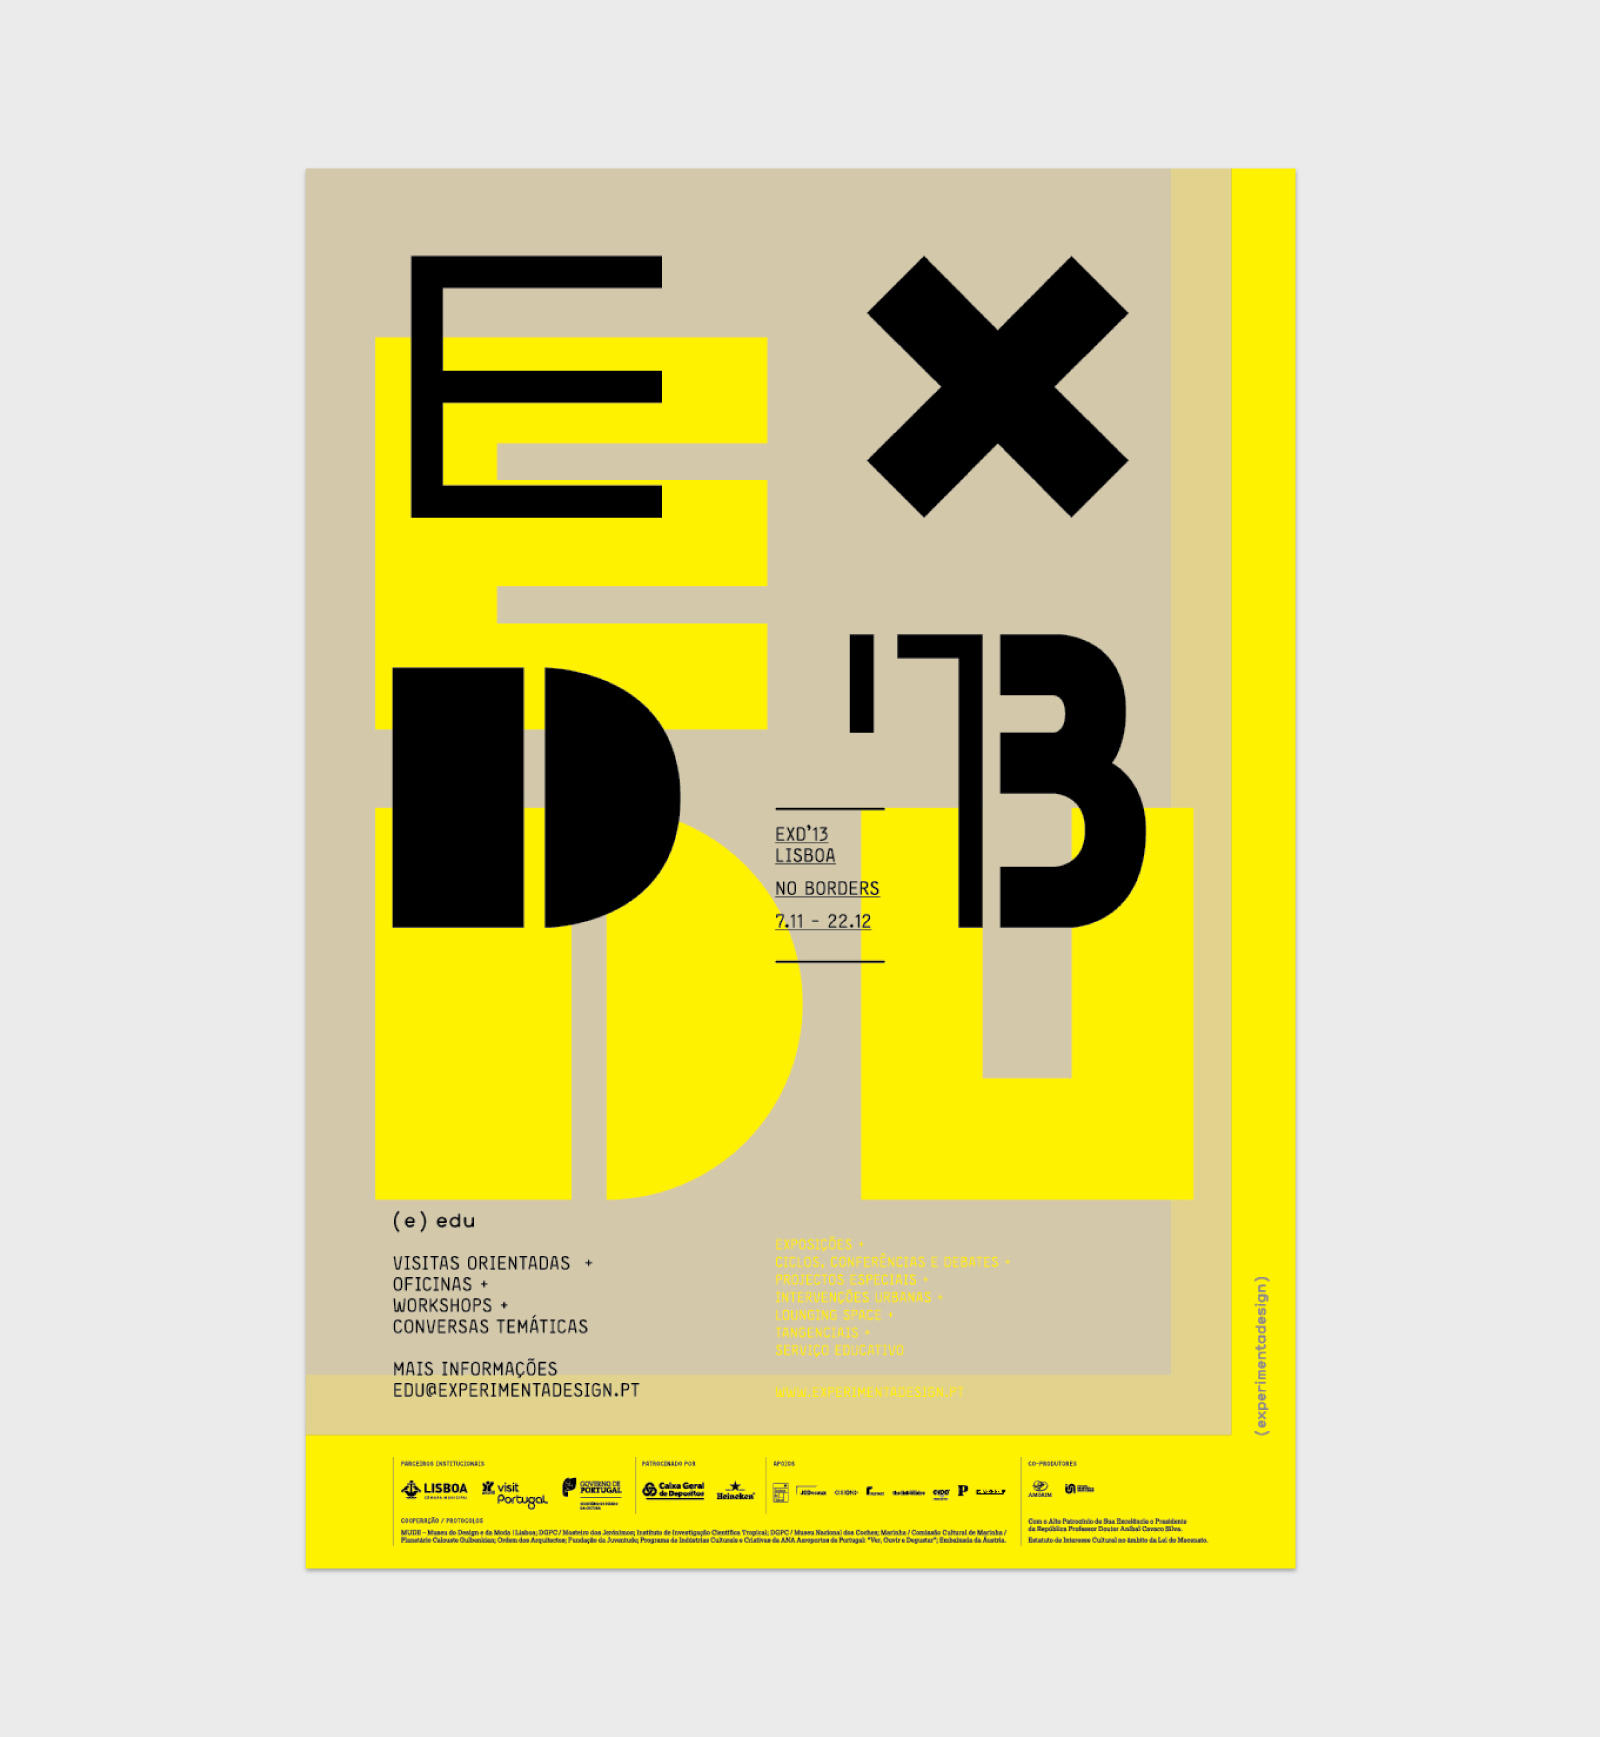 EXD'13 ⟐ Education service poster